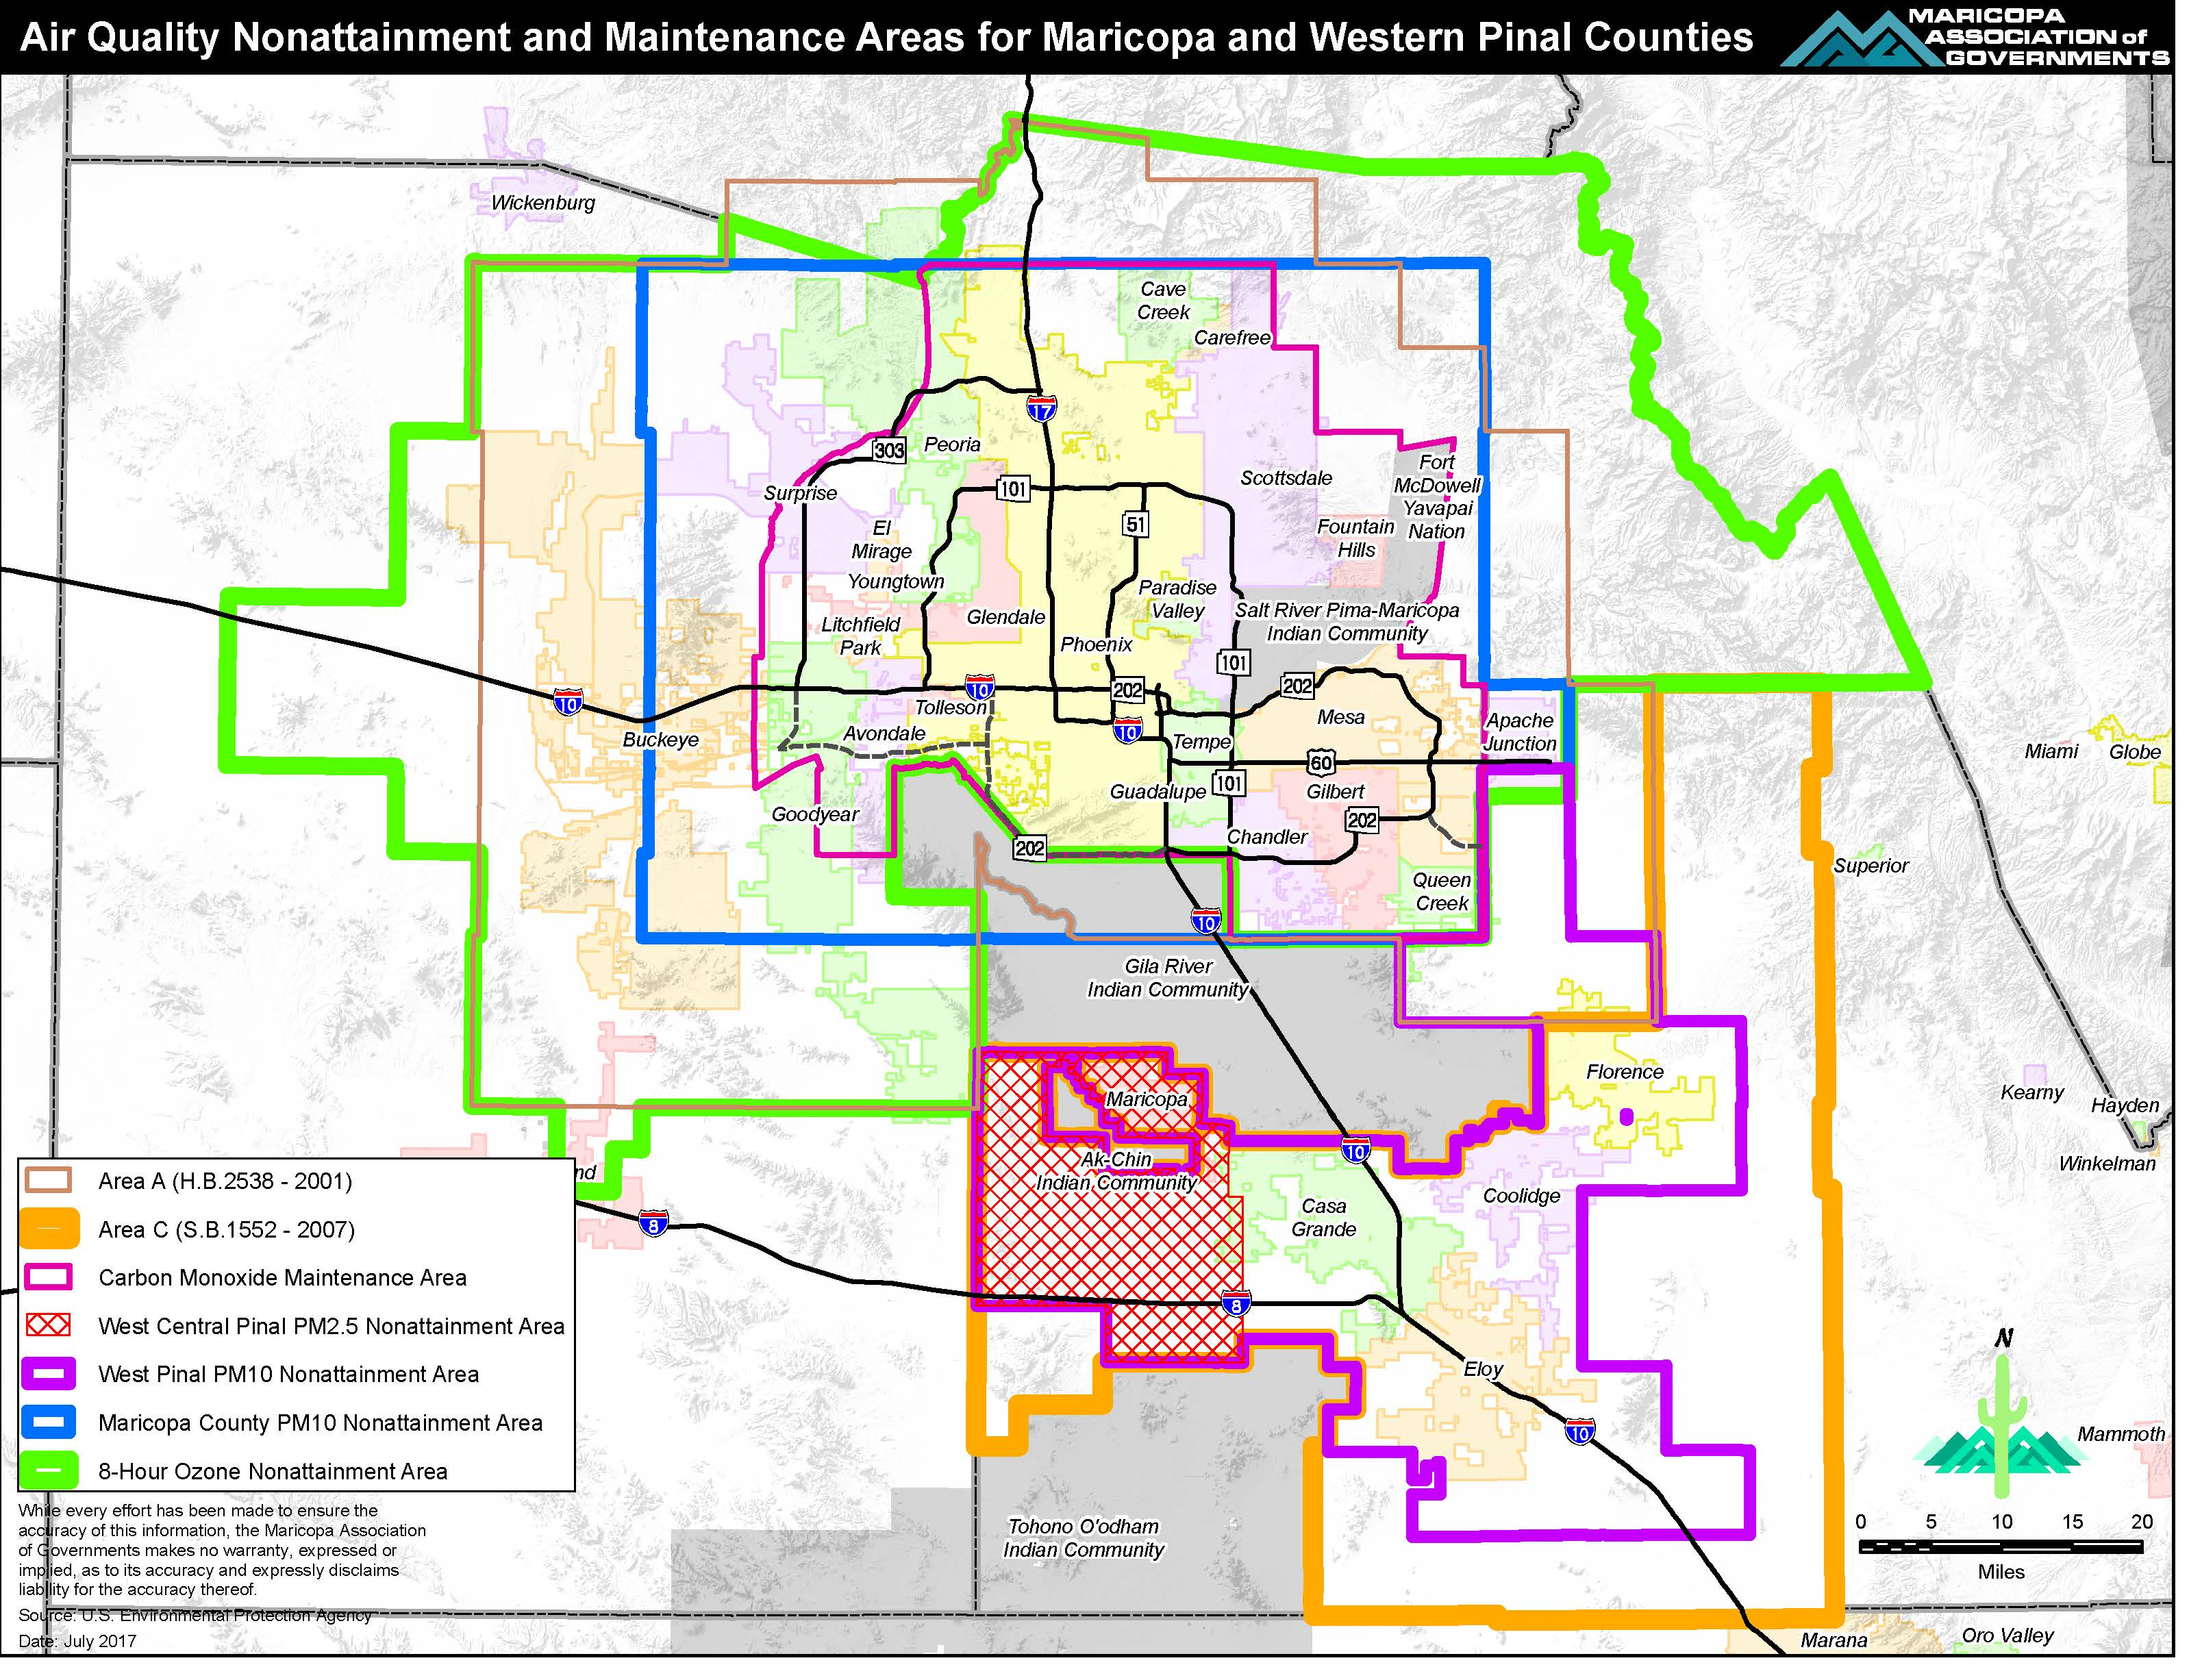 Air Quality Nonattainment and Maintenance Areas for Maricopa and Western Pinal Counties